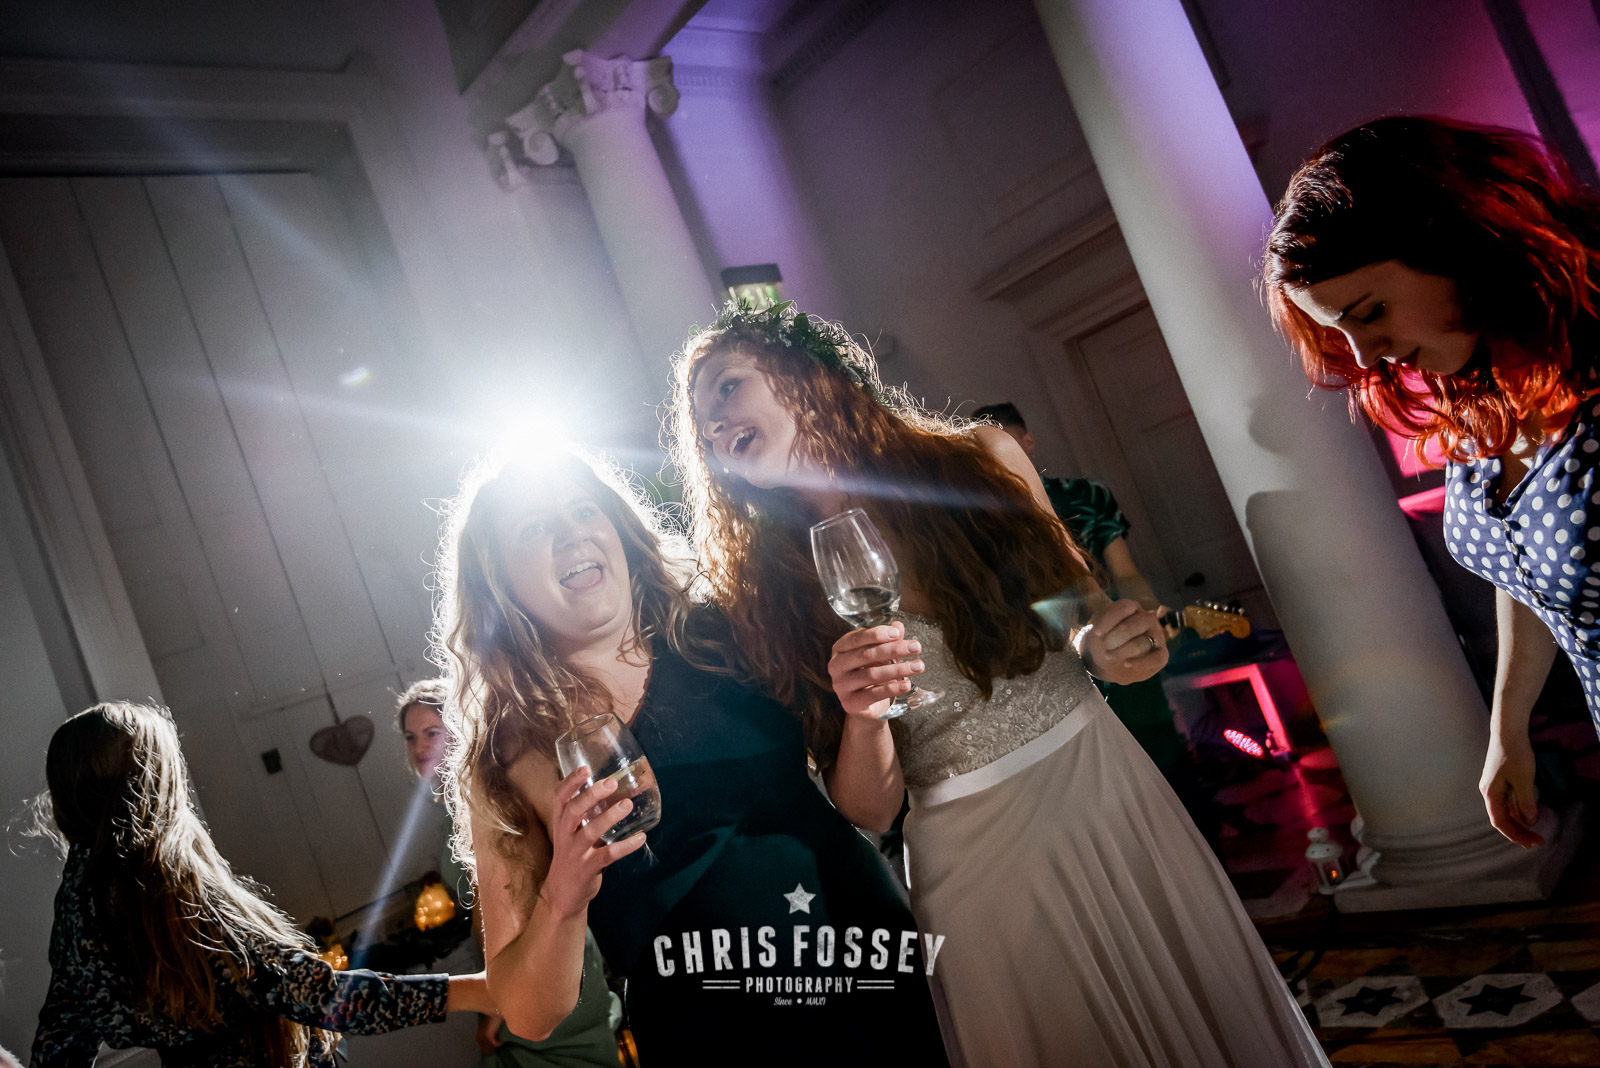 Compton Verney Wedding Photography Warwickshire Wedding Photos by Chris Fossey Photography (104 of 105)